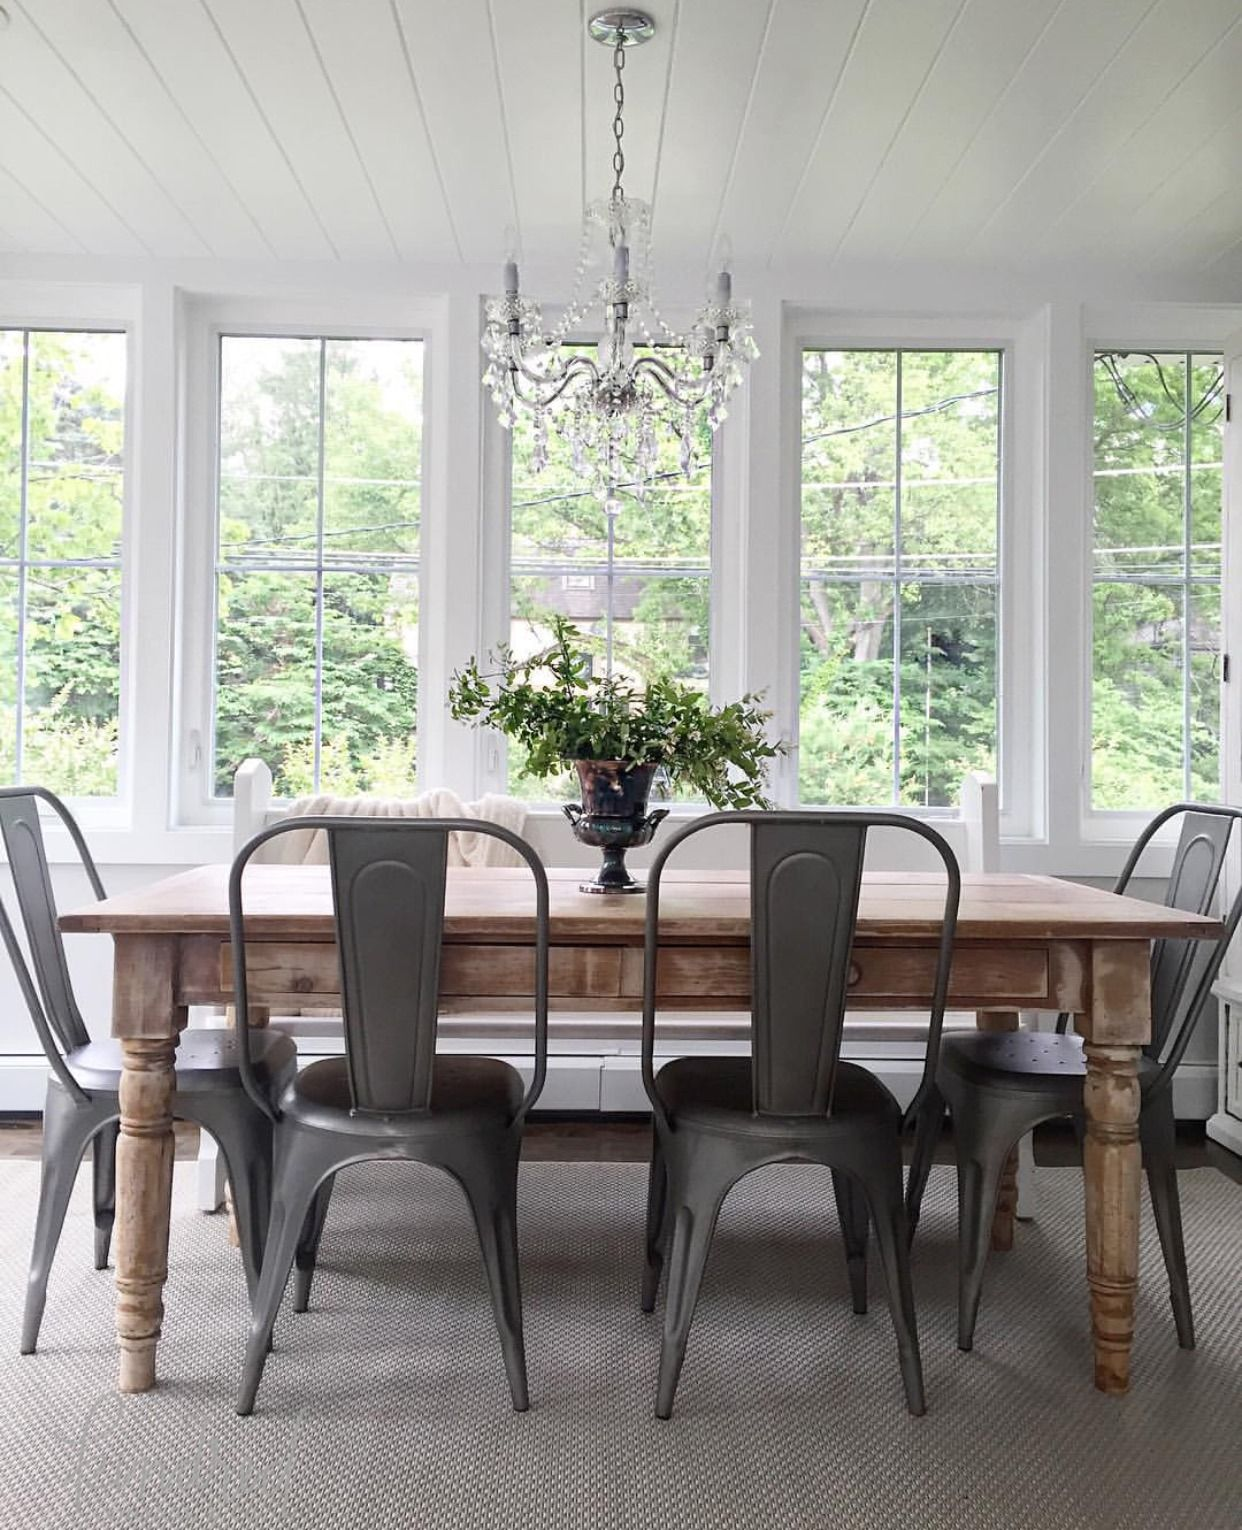 Kindred vintage farmhouse style home design for Farmhouse style dining set